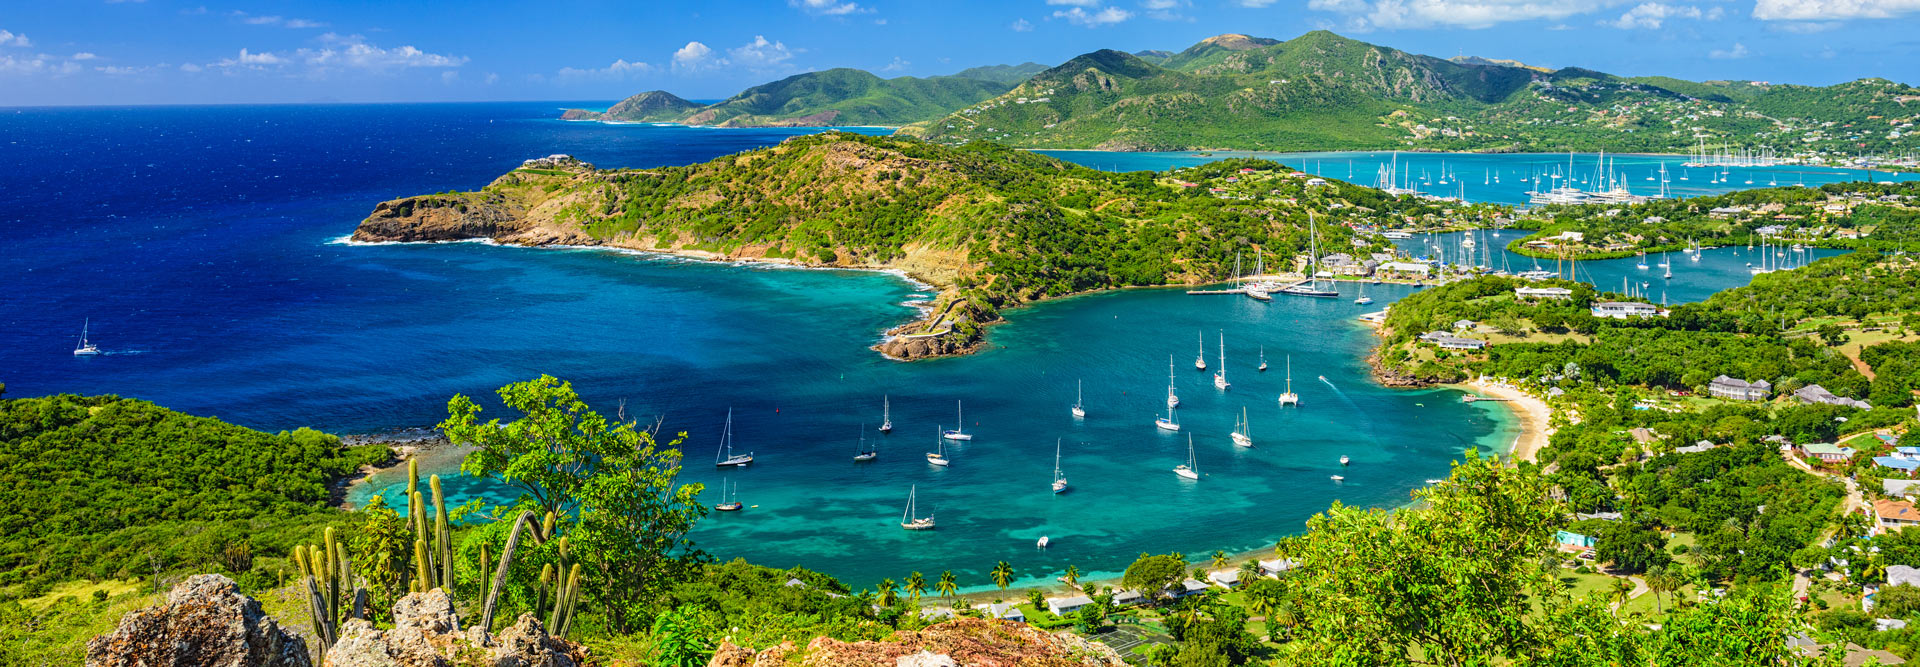 caribbean leward islands shirley heights antigua